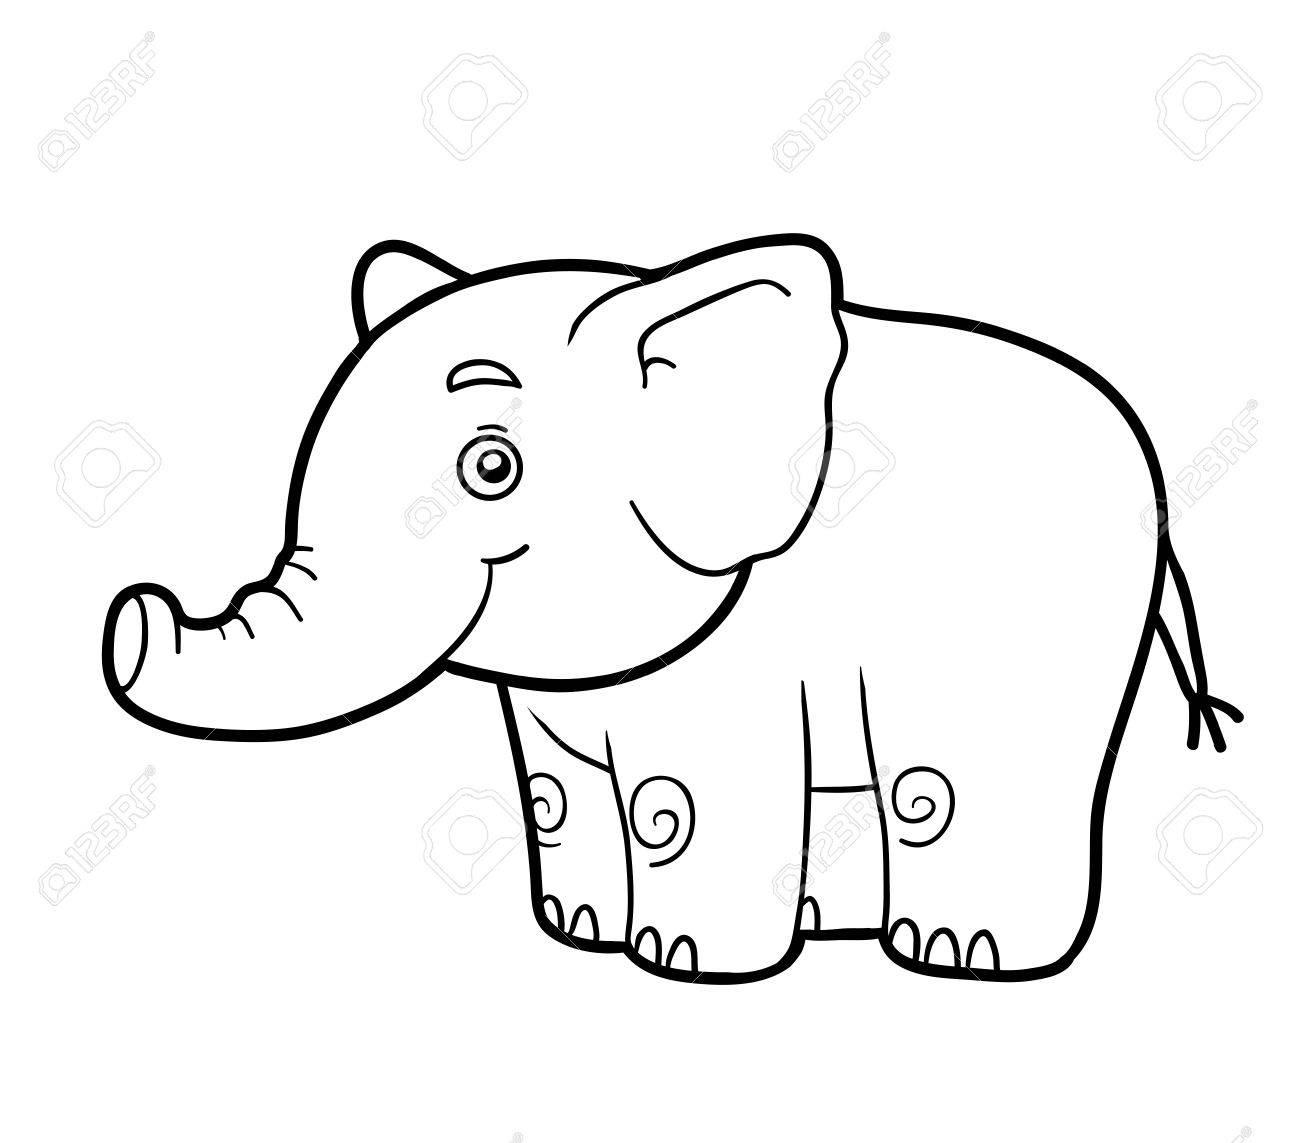 Coloring Book For Children (elephant) Royalty Free Cliparts, Vectors ...